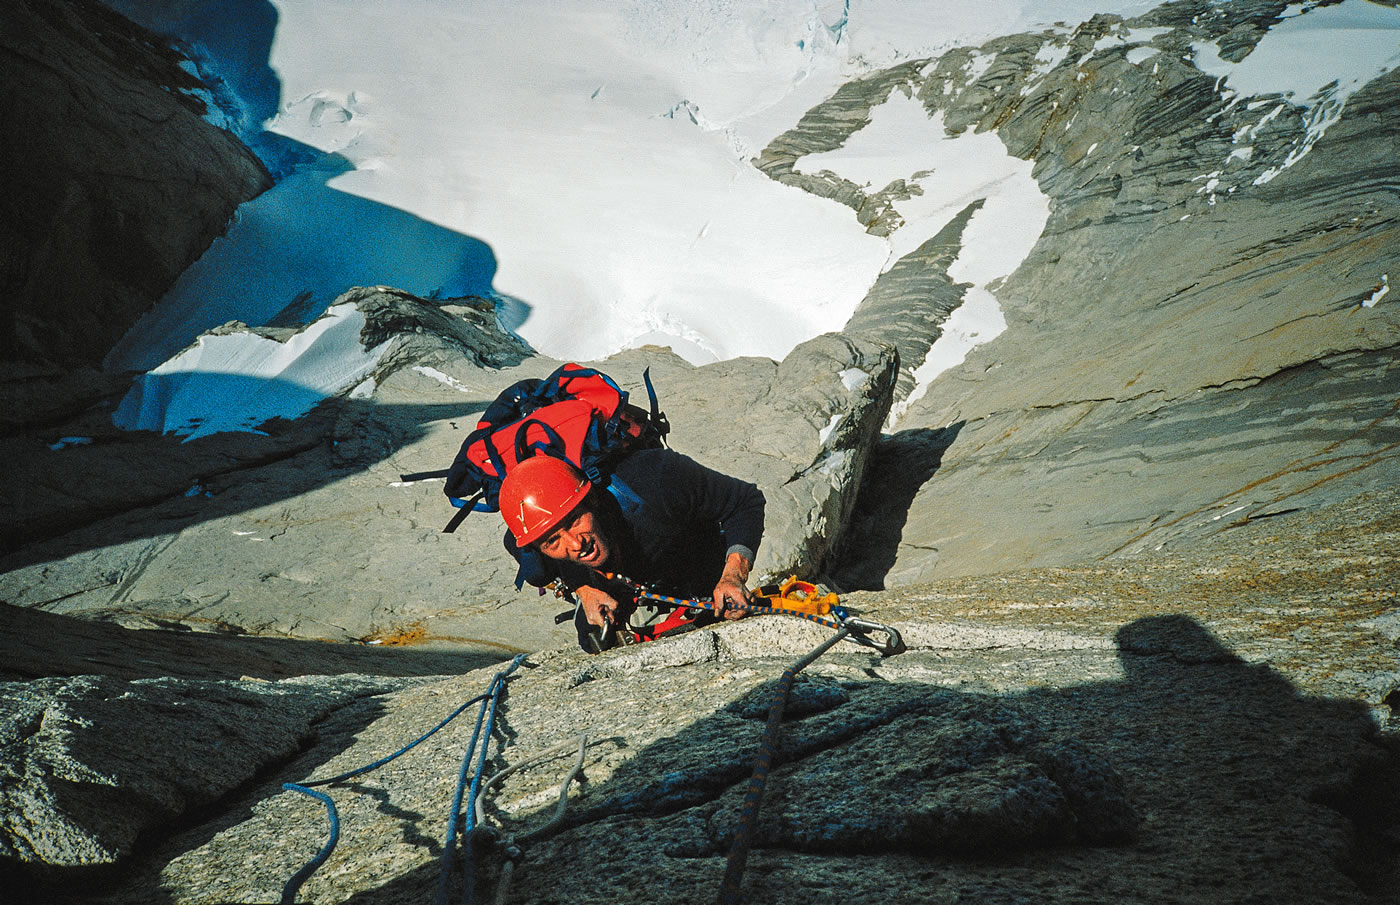 Knez on Peklenska Direttissima, Cerro Torre. Rolando Garibotti's website Pataclimb.com describes this as a very difficult line, on which no progression bolts were placed and only 5 bolts were placed for belays. [Photo] Silvo Karo